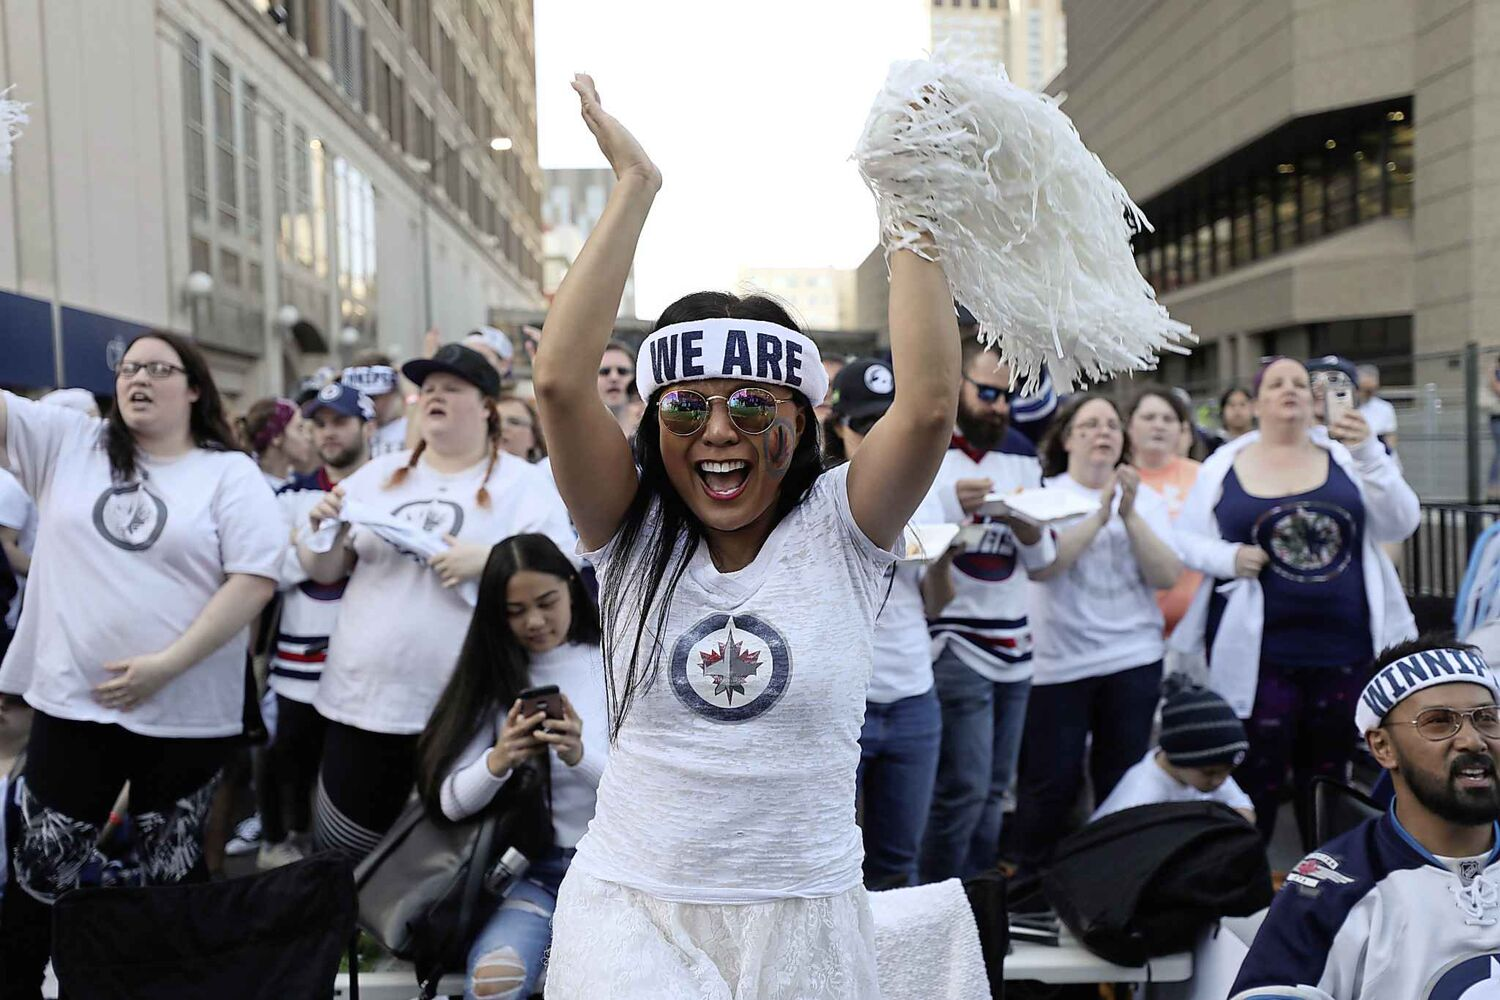 RUTH BONNEVILLE / WINNIPEG FREE PRESS</p><p>Melanie Ilag dances to the music of Big City All Star Band on stage at the Whiteout street party just prior to the start of Game 1 of the Western Conference final between Winnipeg Jets and Las Vegas Golden Knights Saturday, May 12, 2018.</p>